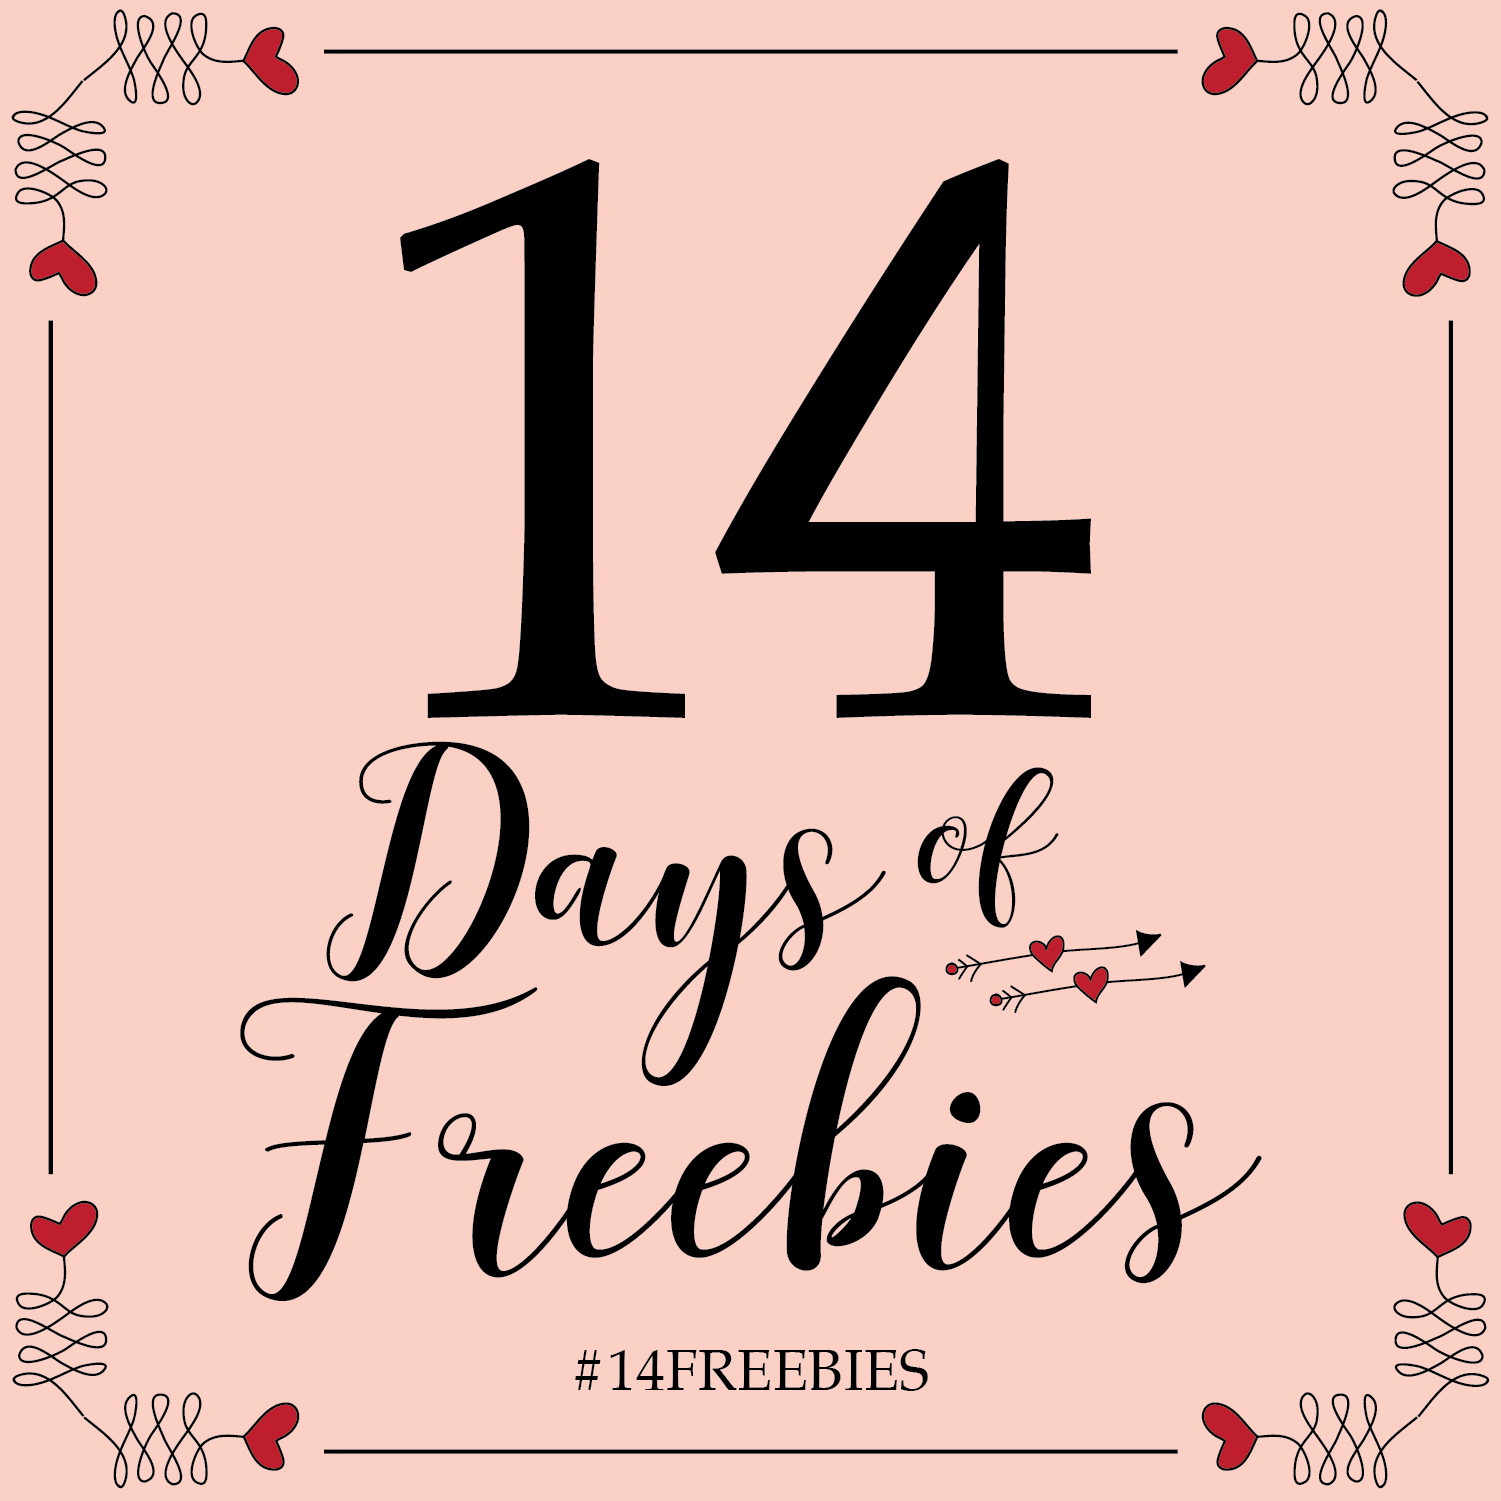 14Freebies-01